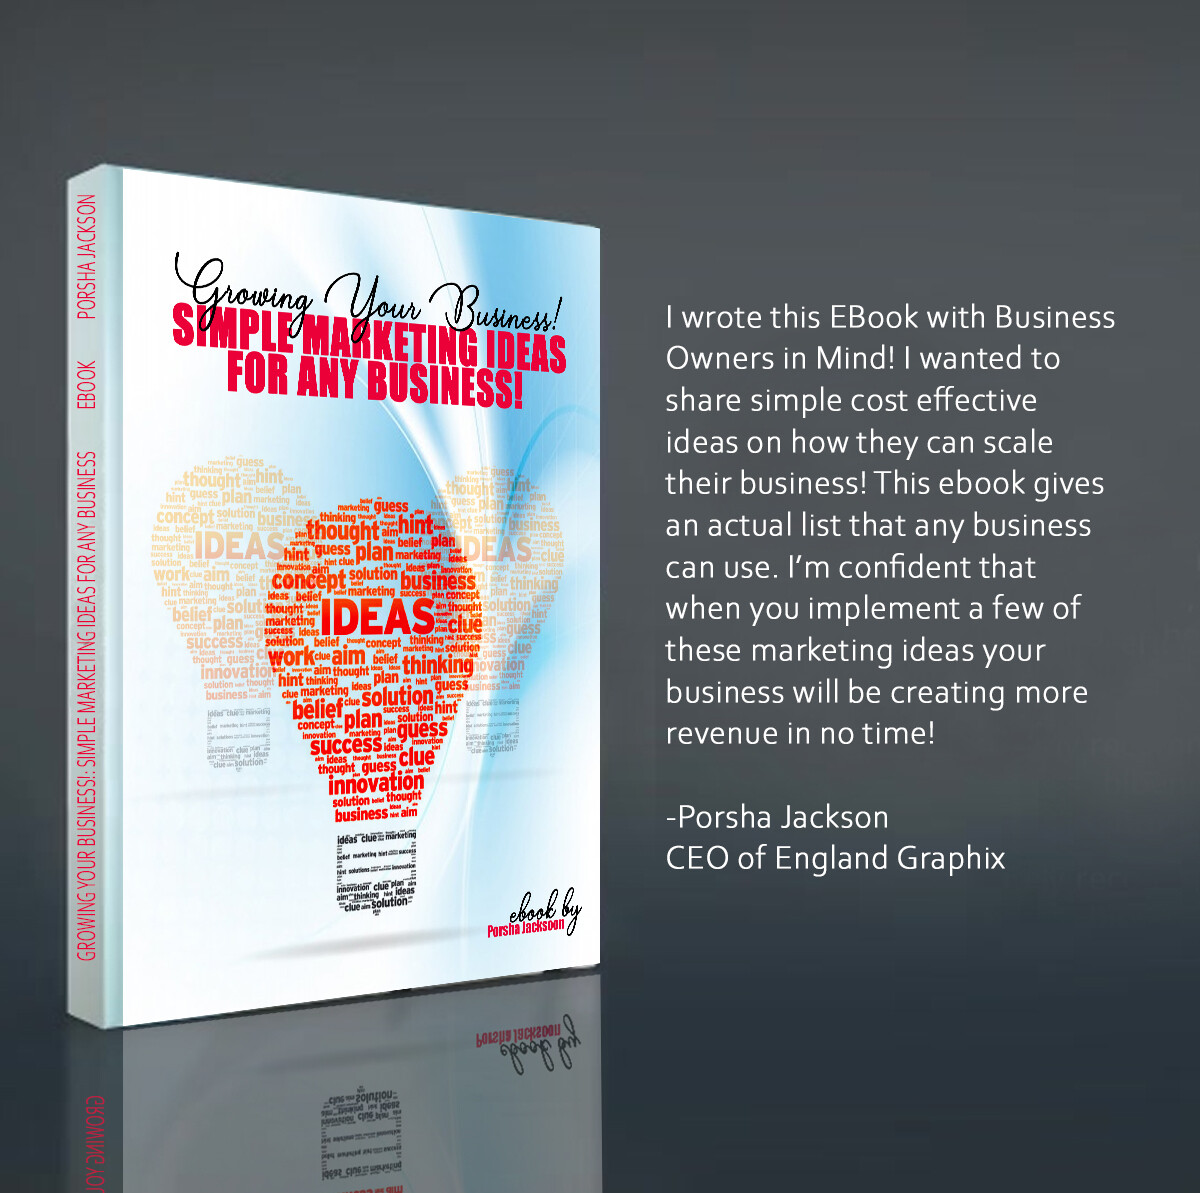 Marketing Ideas for Any Business EBook